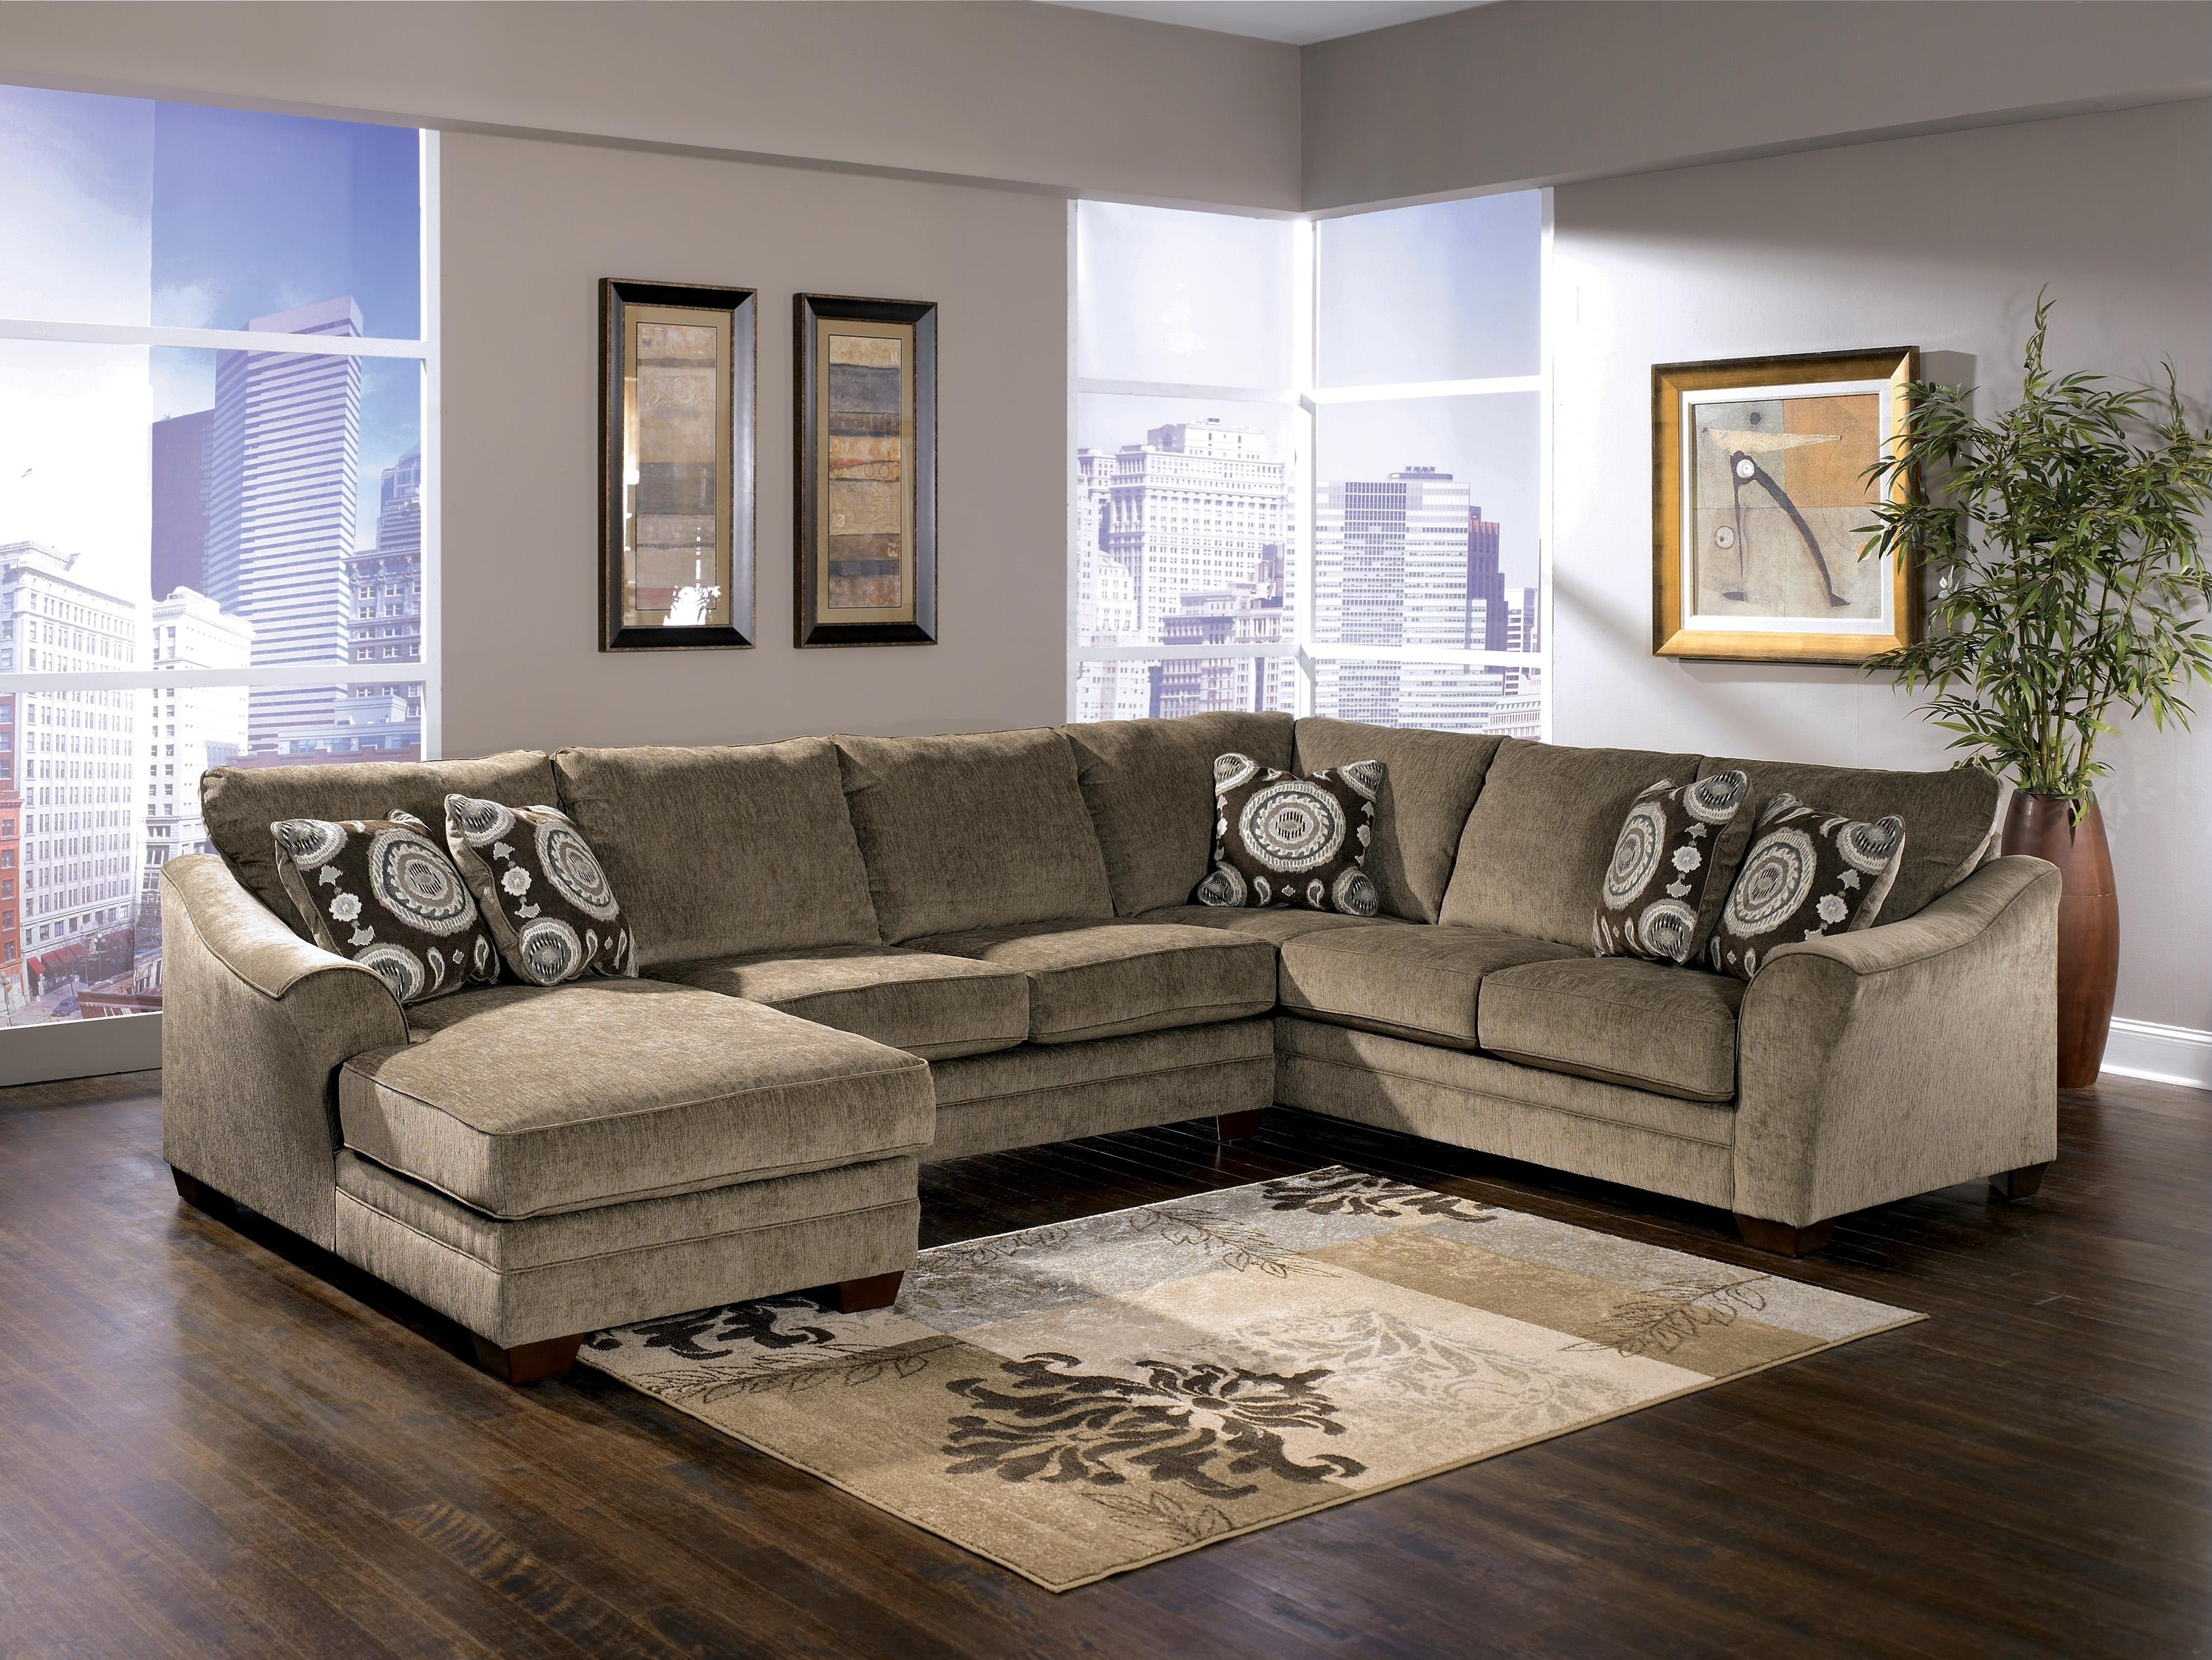 Fashionable Signature Designashley Cosmo – Marble Sectional Sofa With Within Peterborough Ontario Sectional Sofas (View 4 of 15)